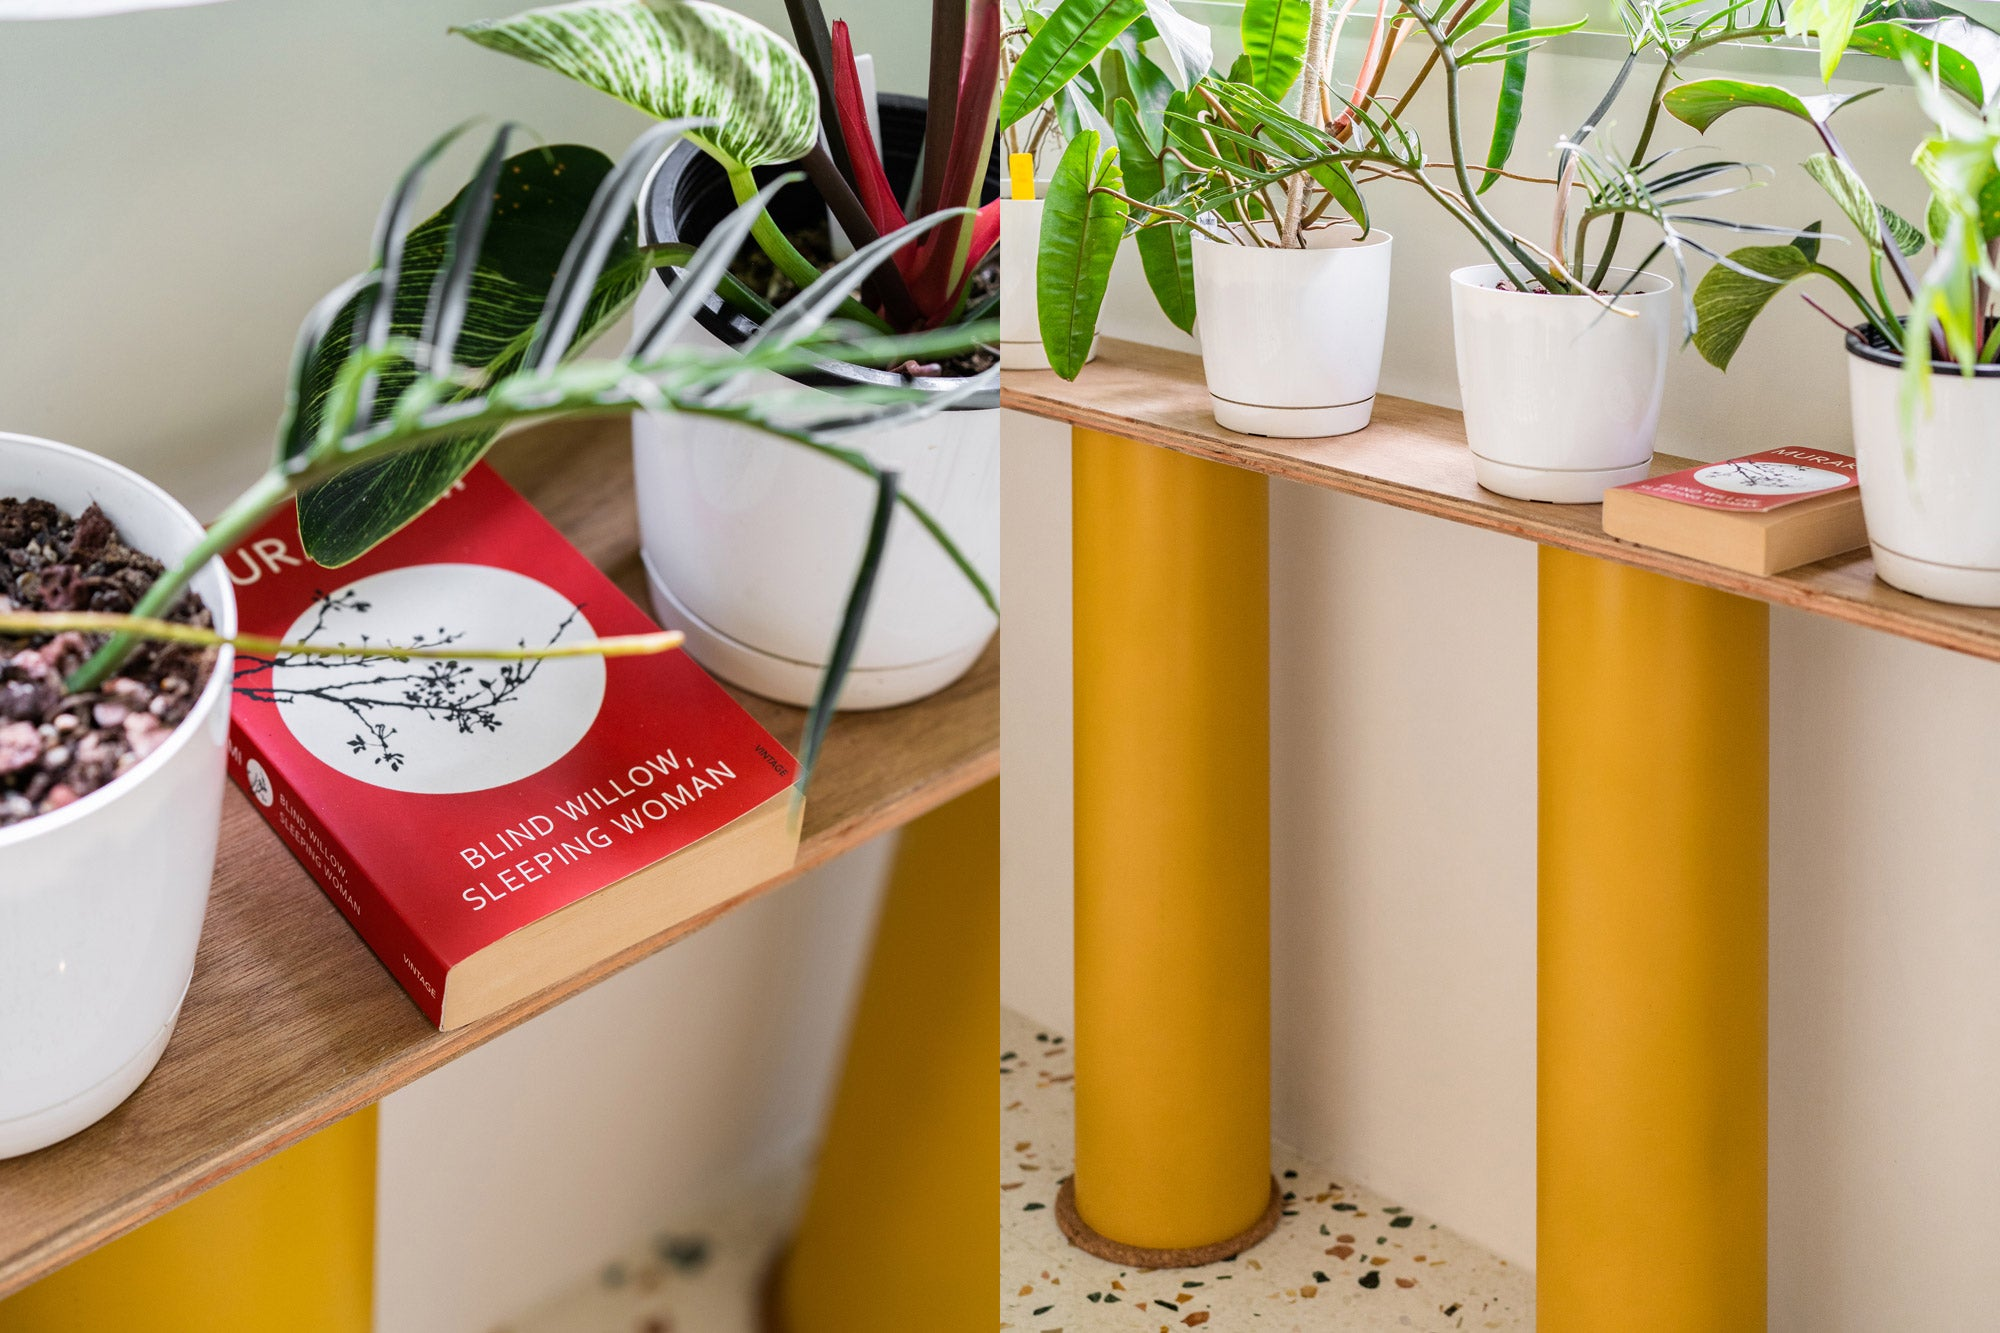 diy plant shelf with wooden top and spray painted yellow pvc pipes